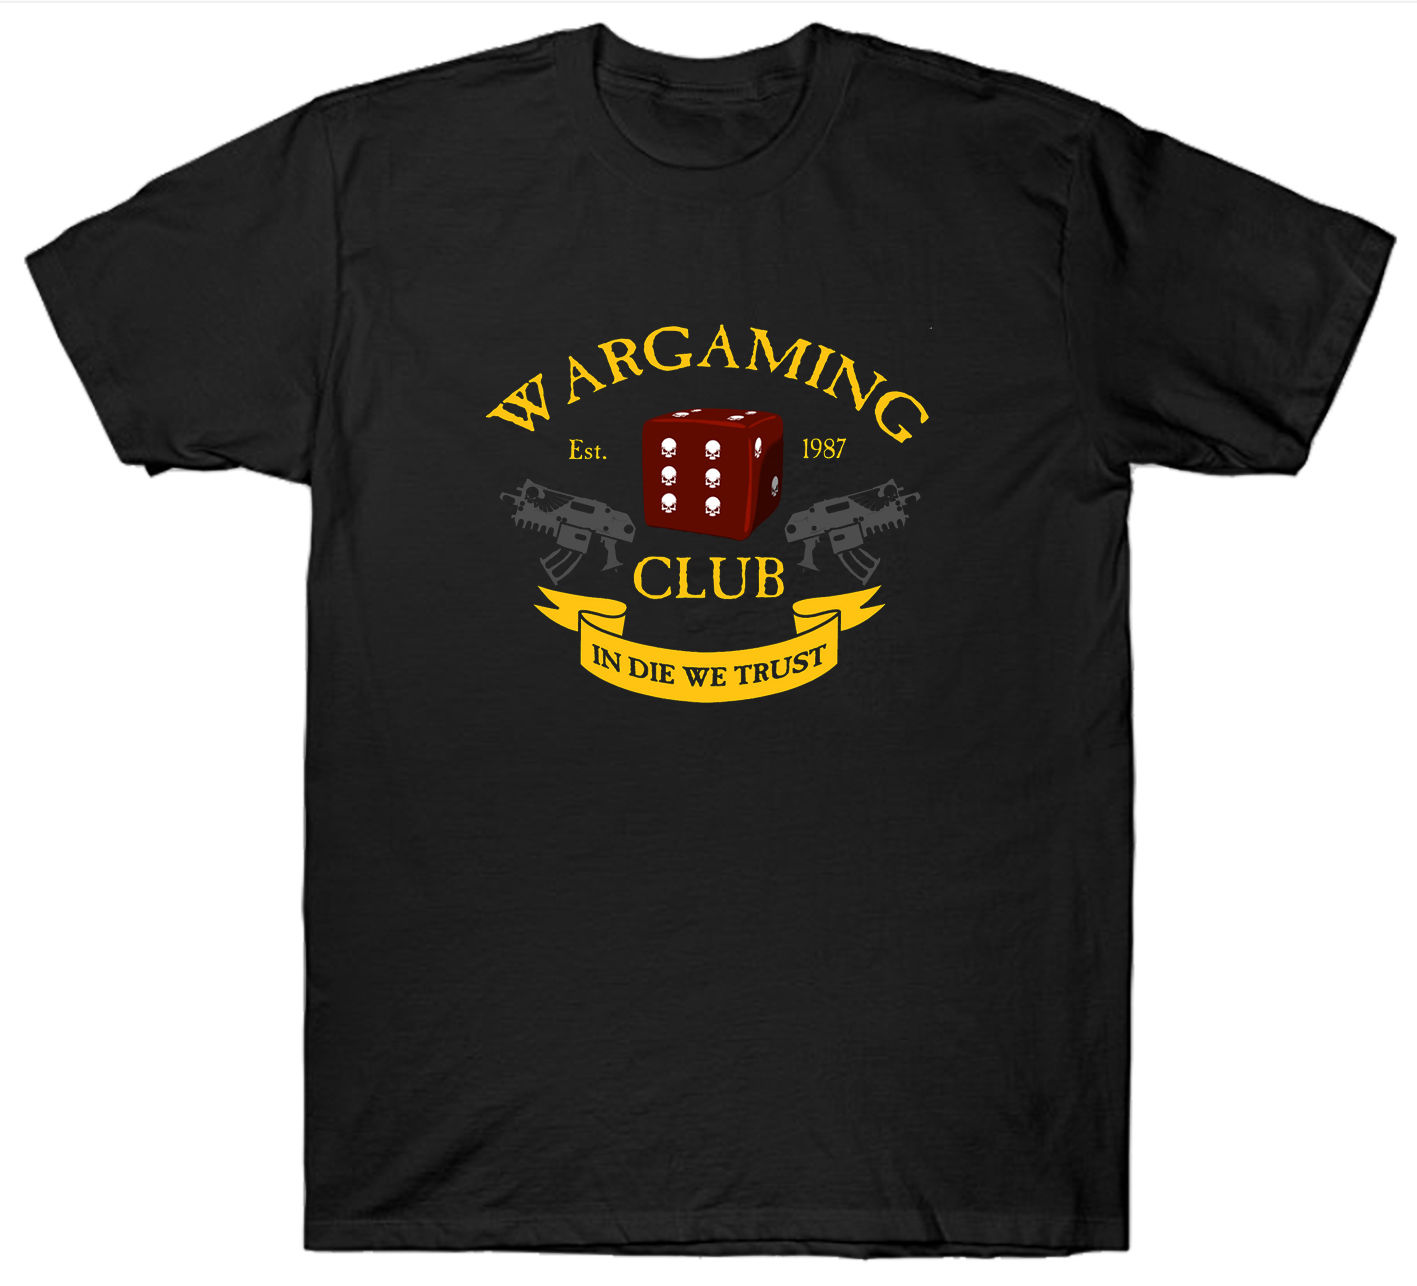 WARGAMING CLUB T SHIRT TOP WARGAMES WAR GAMES GAME GAMER O-Neck Oversize Style T-Shirts Styles Comfortable Top Tee Plus Size